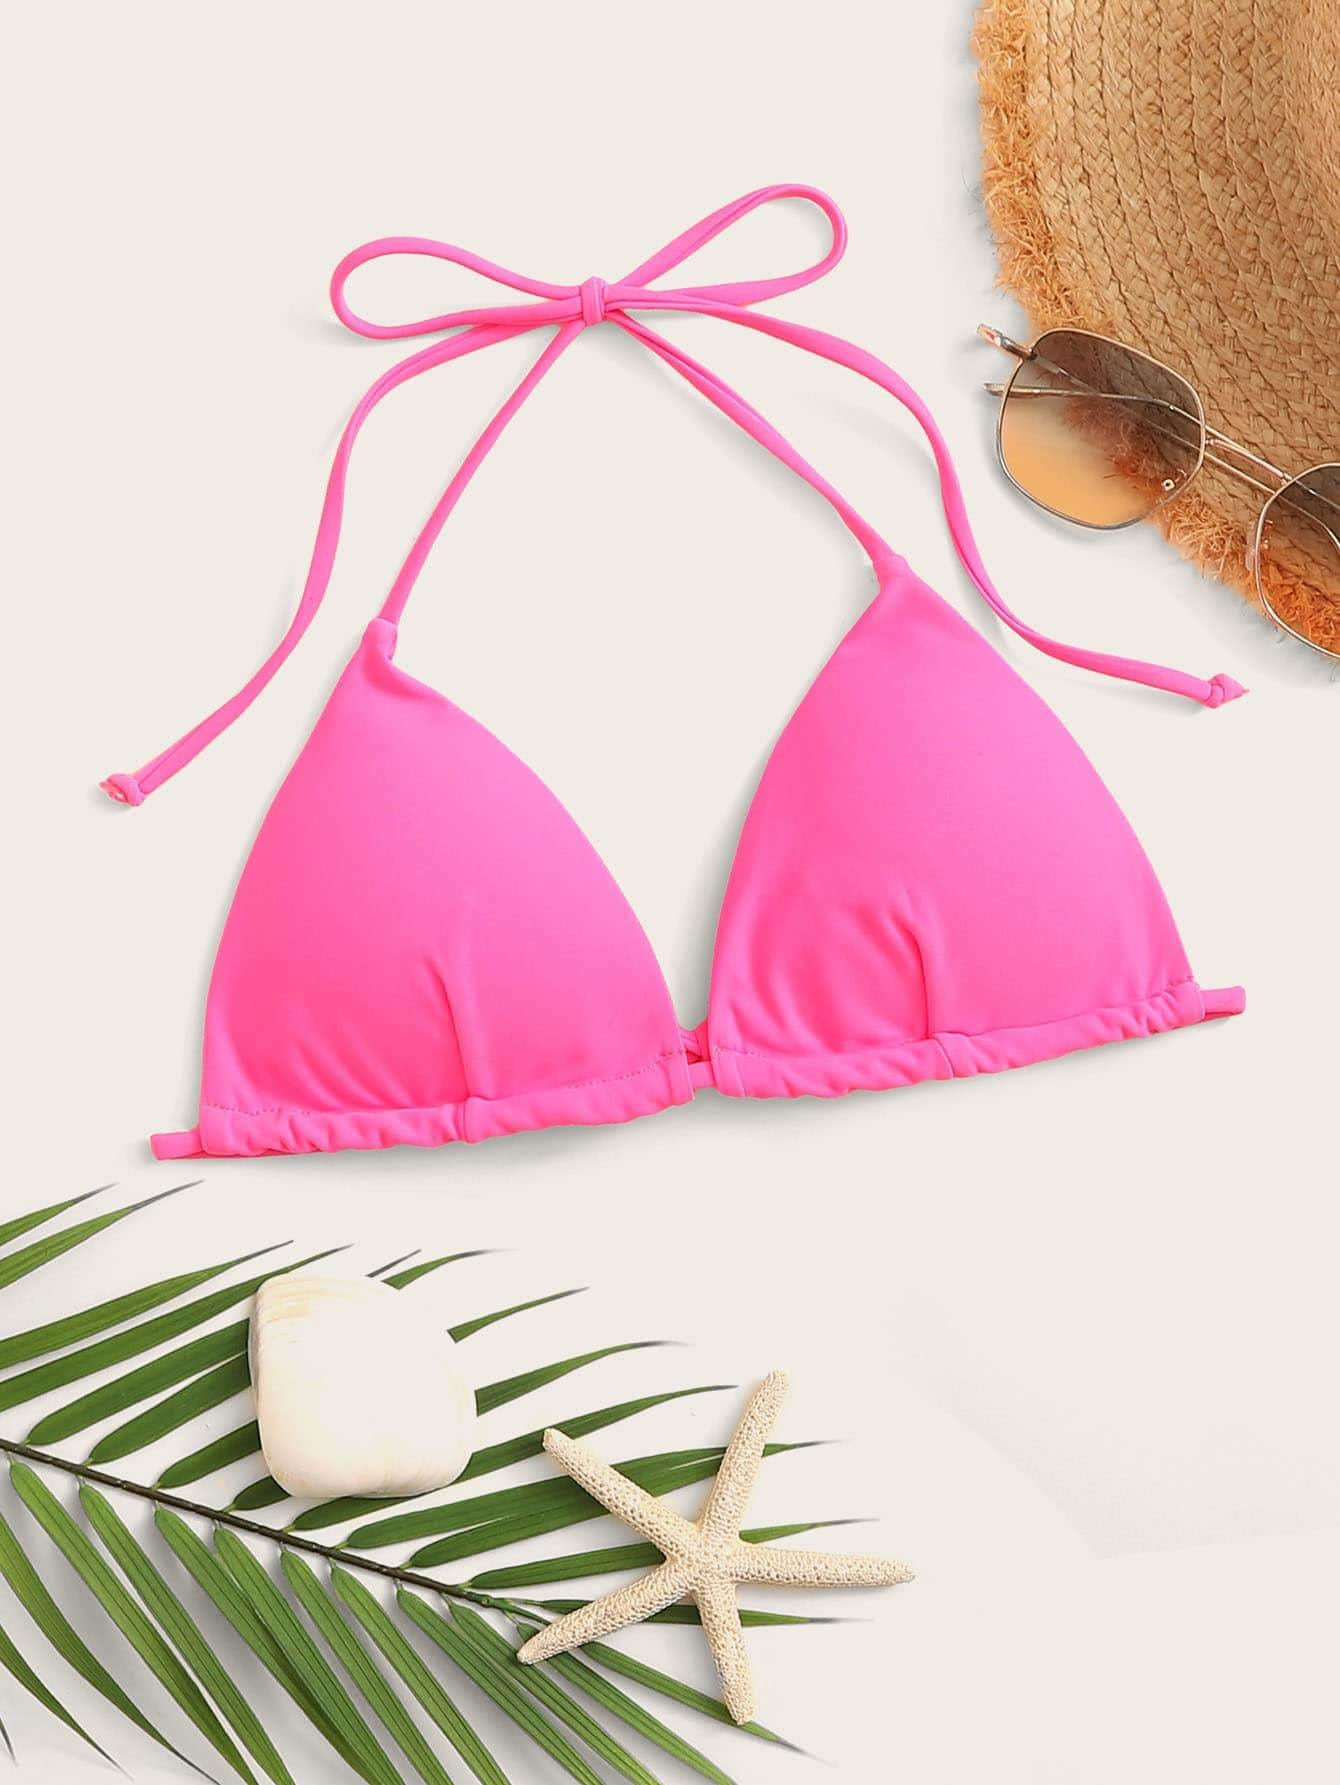 Neon Pink Triangle Halter Swimming Top - S - Bikini